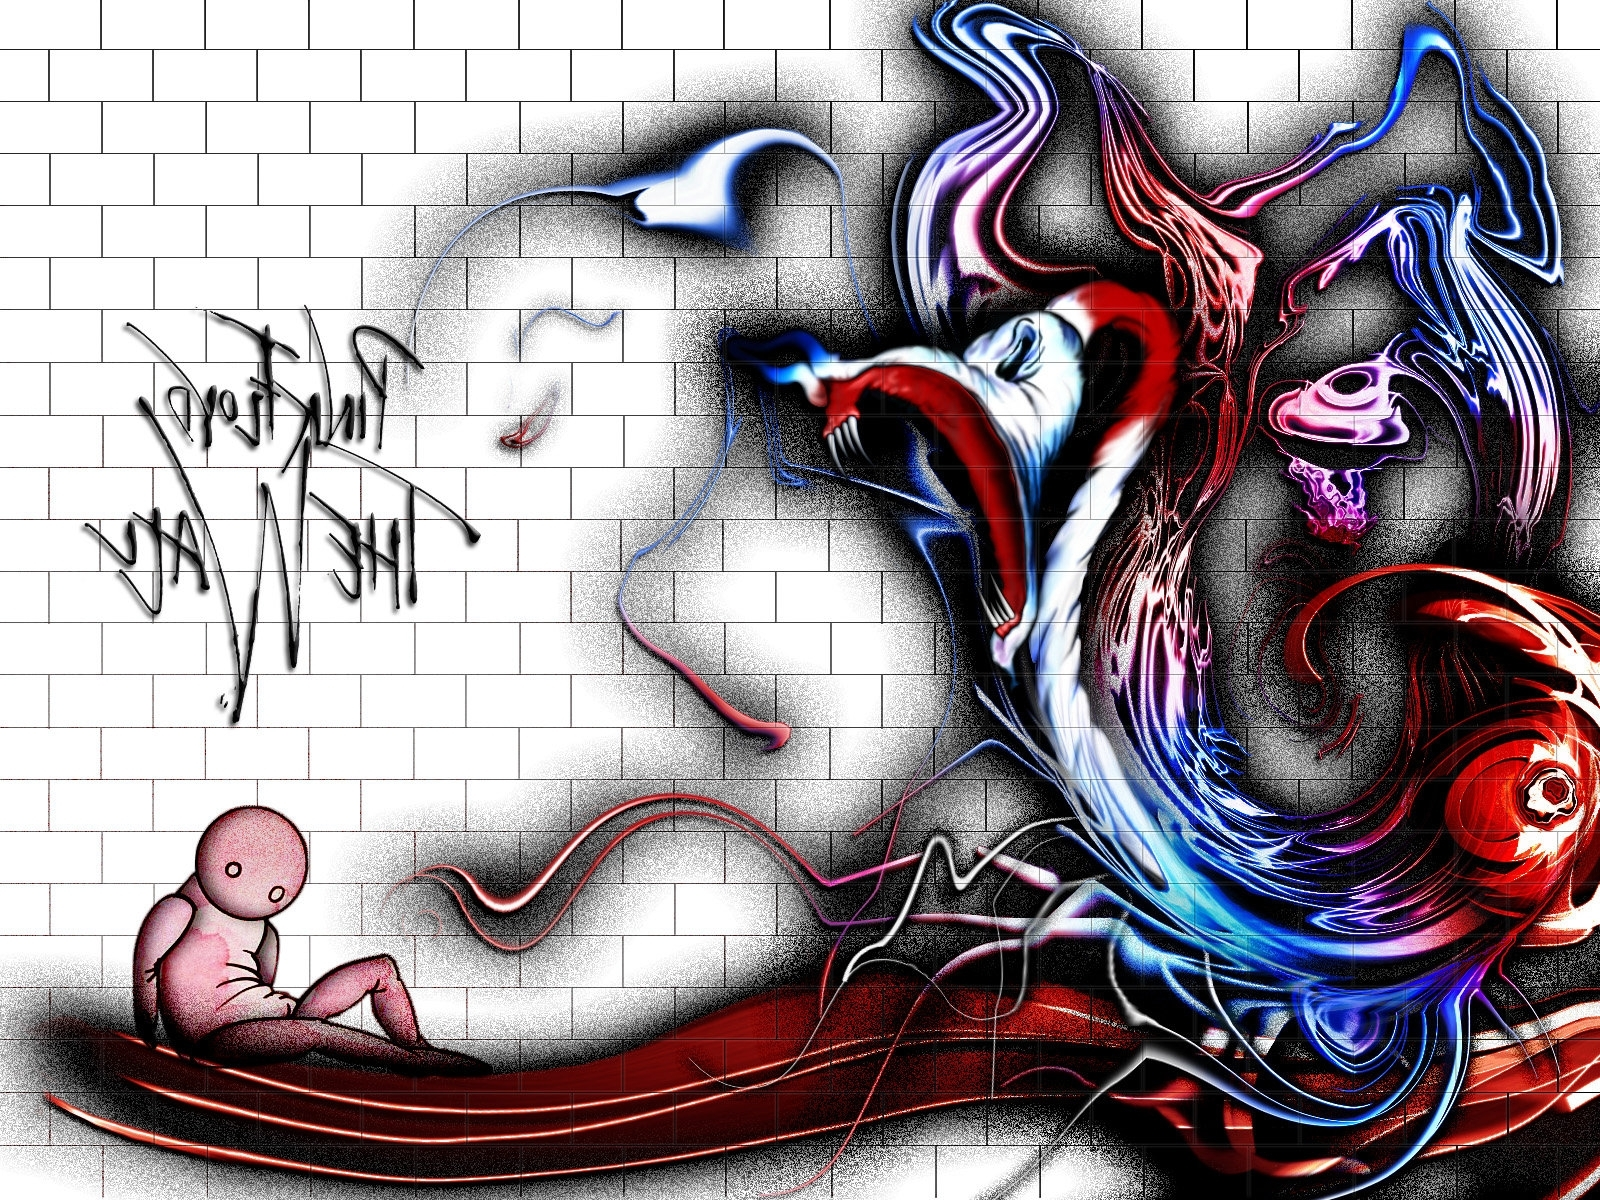 Pink' Floyd – The Wallemrat On Deviantart Intended For 2017 Pink Floyd The Wall Art (View 12 of 15)